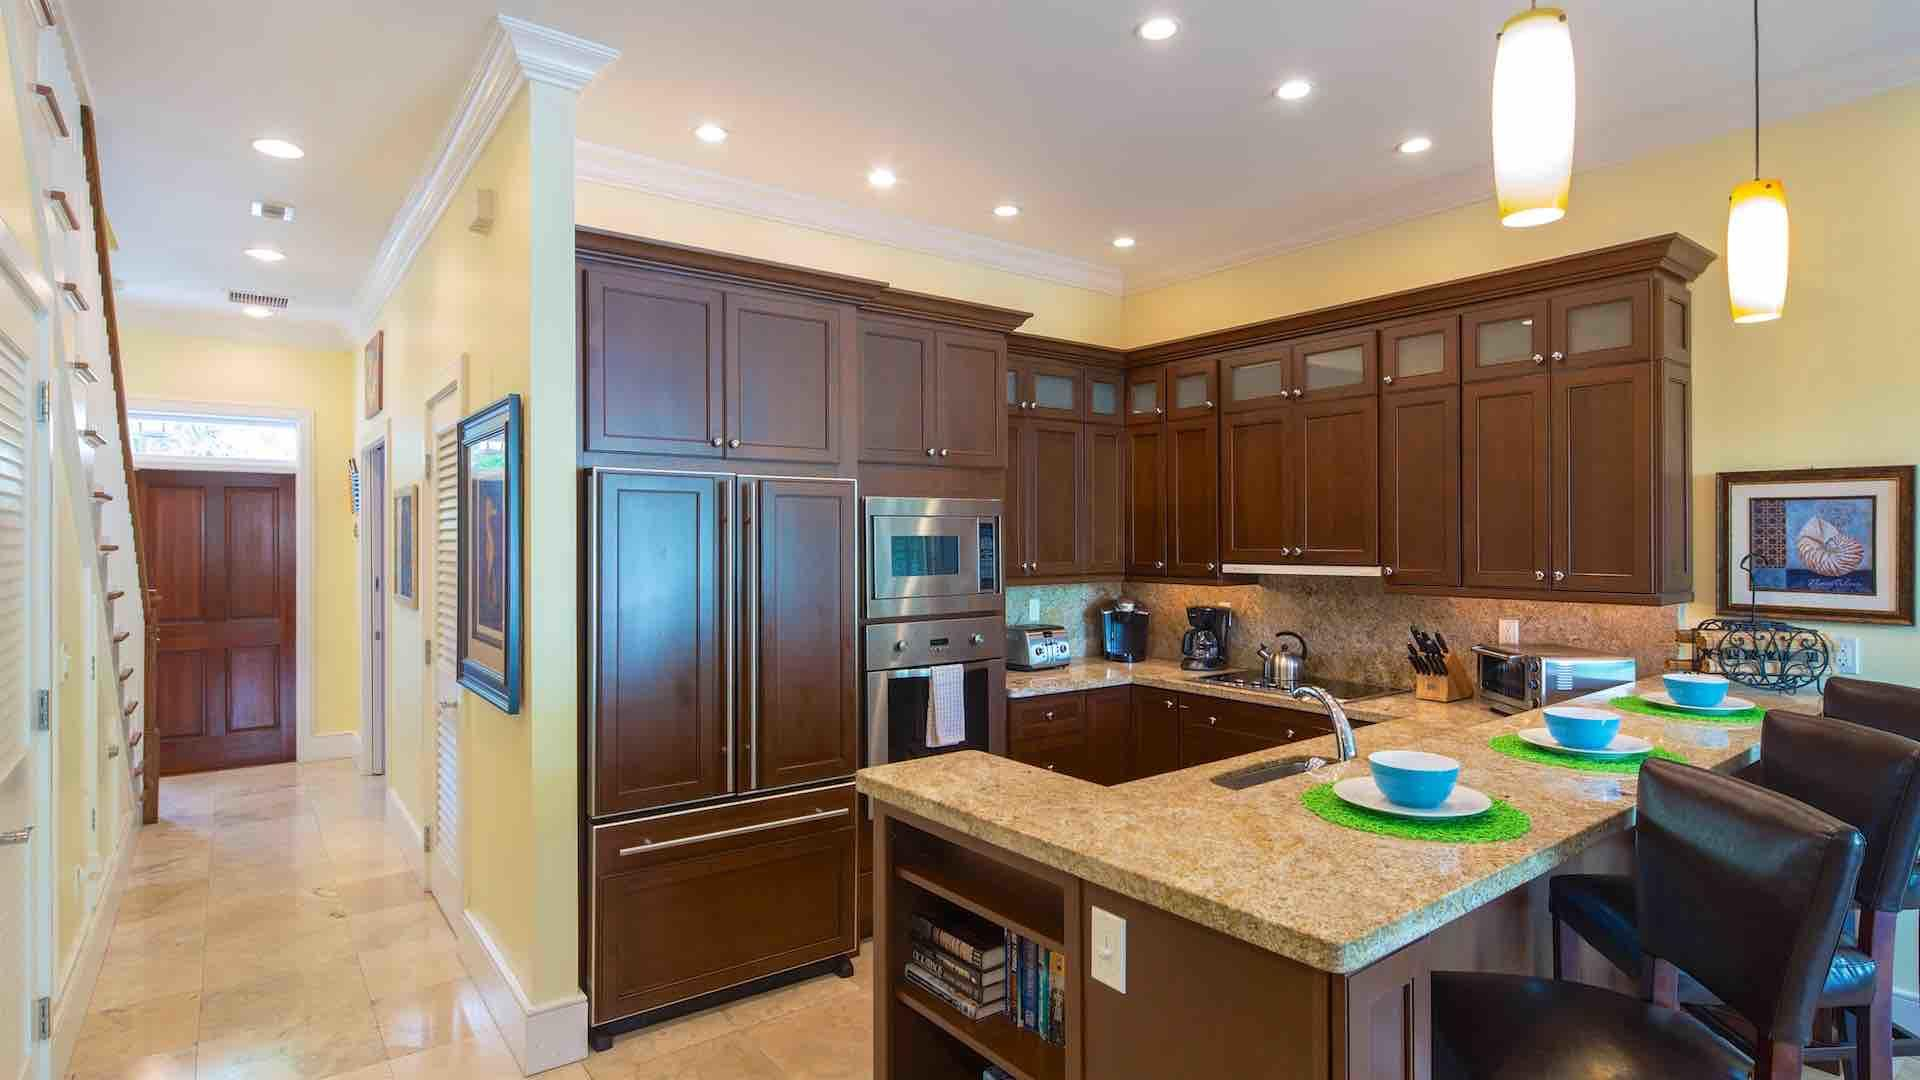 The kitchens are fully equipped with state of the art appliances and all of the tools and utensils you will need to prepare a meal at home...